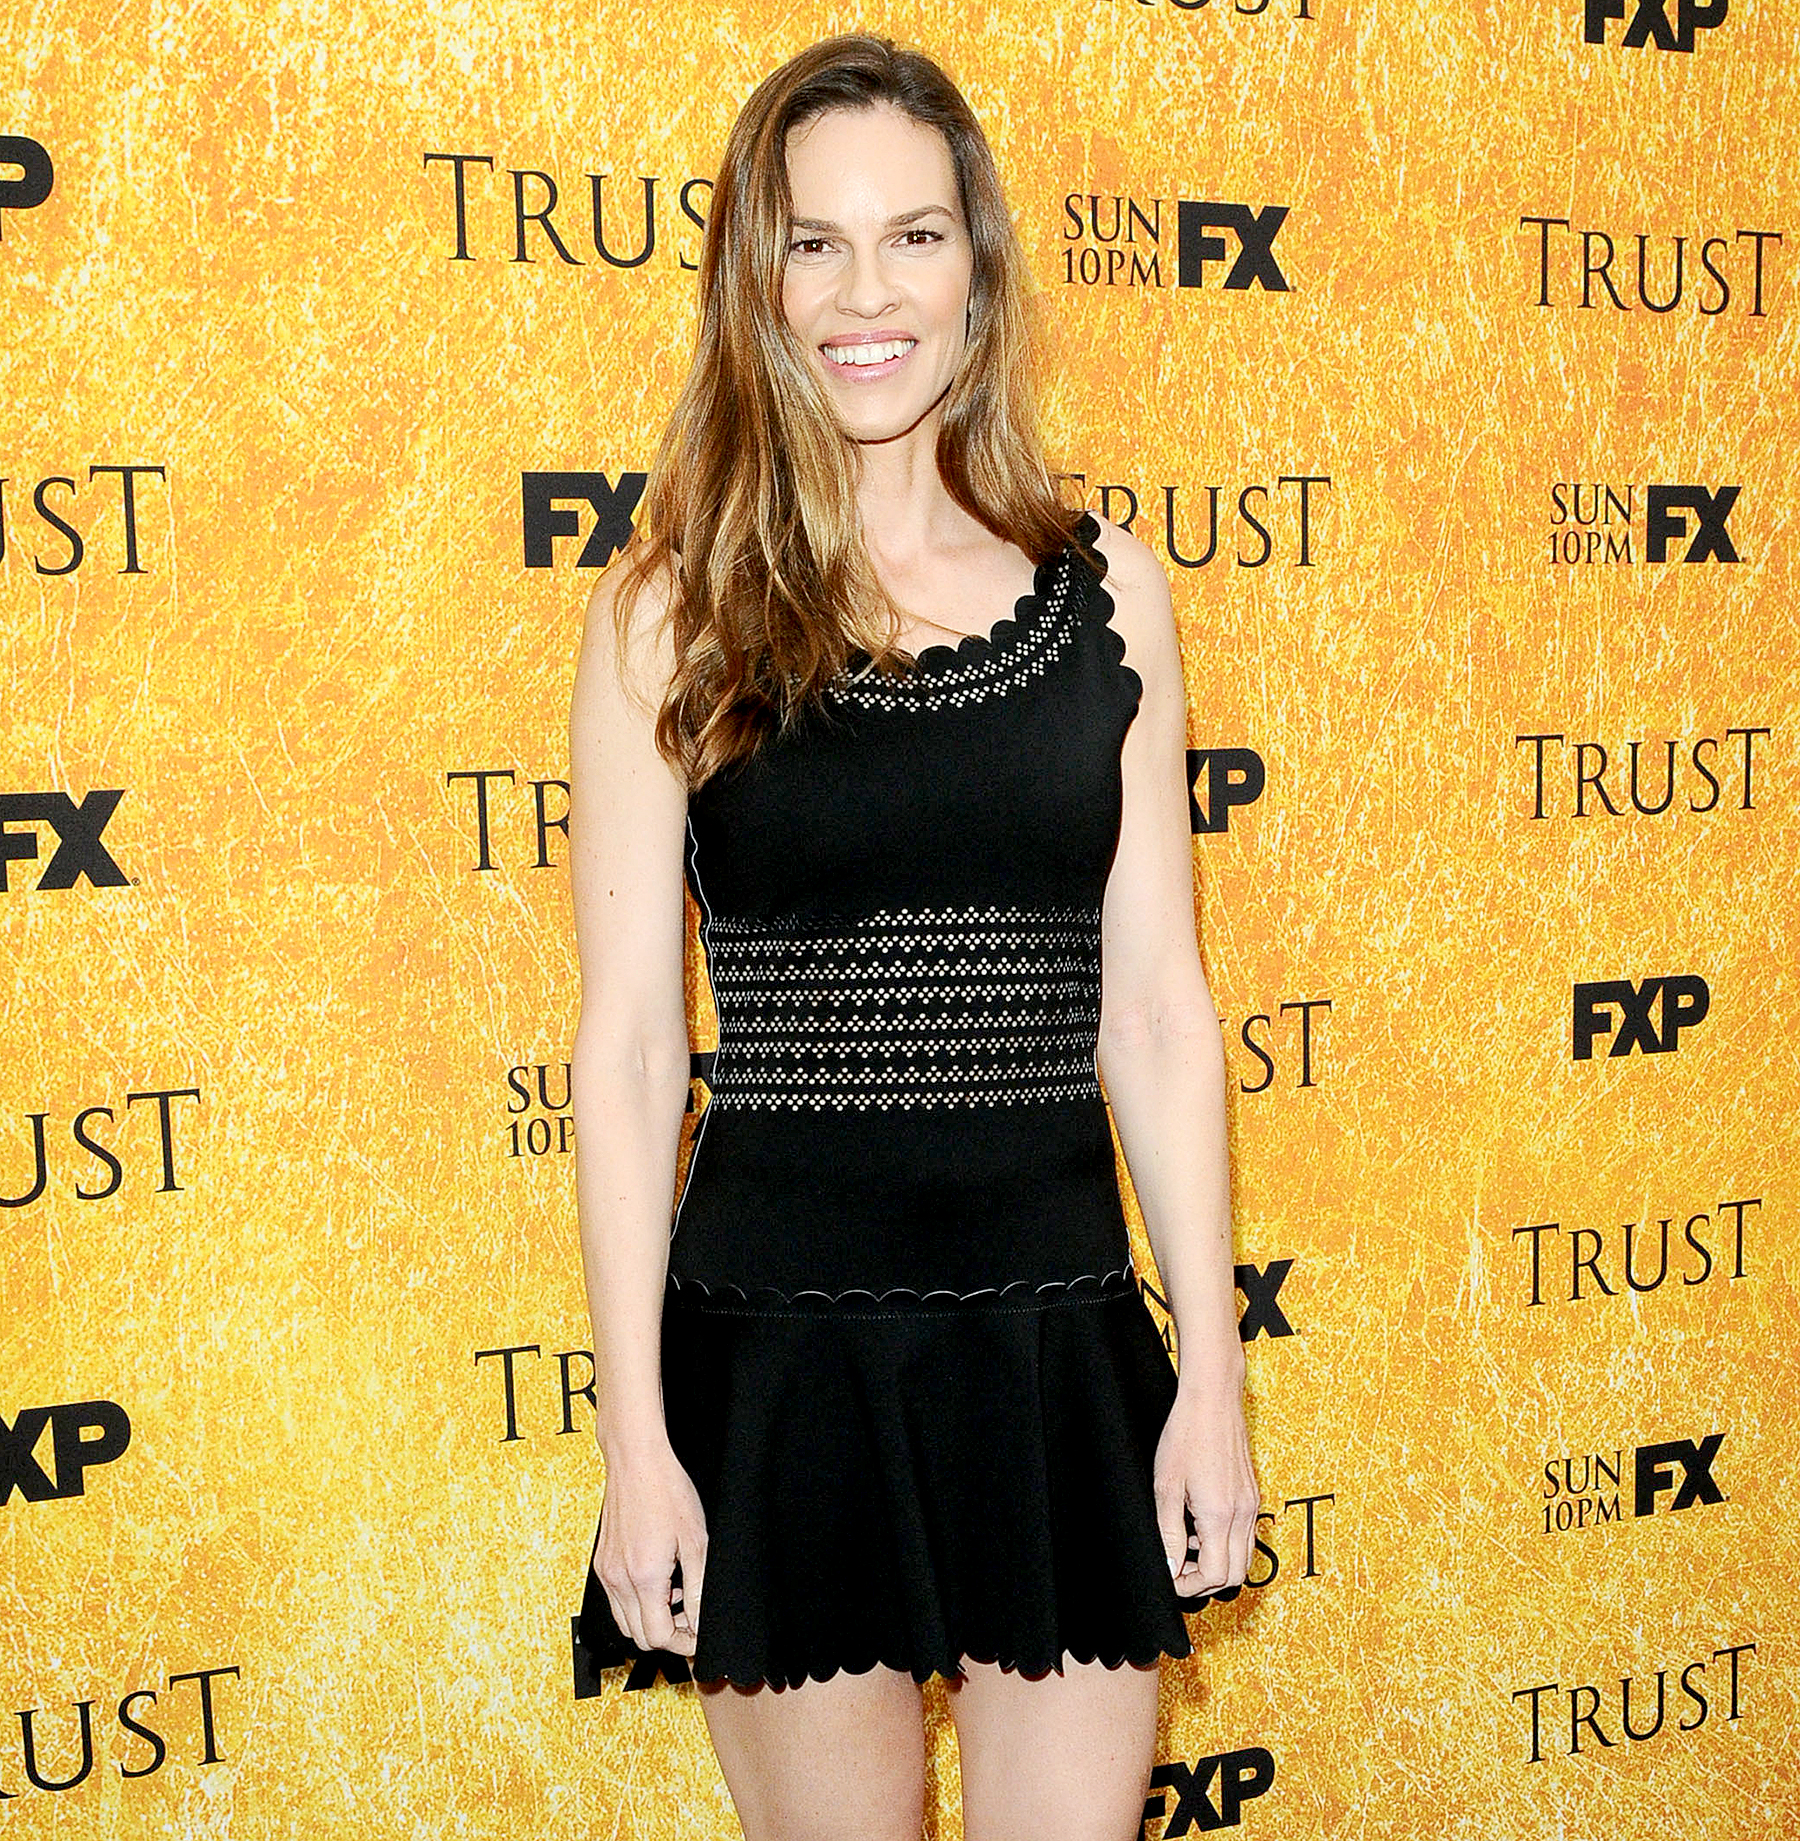 Paparazzi Hilary Ann Swank naked (81 photo), Ass, Fappening, Twitter, cleavage 2019